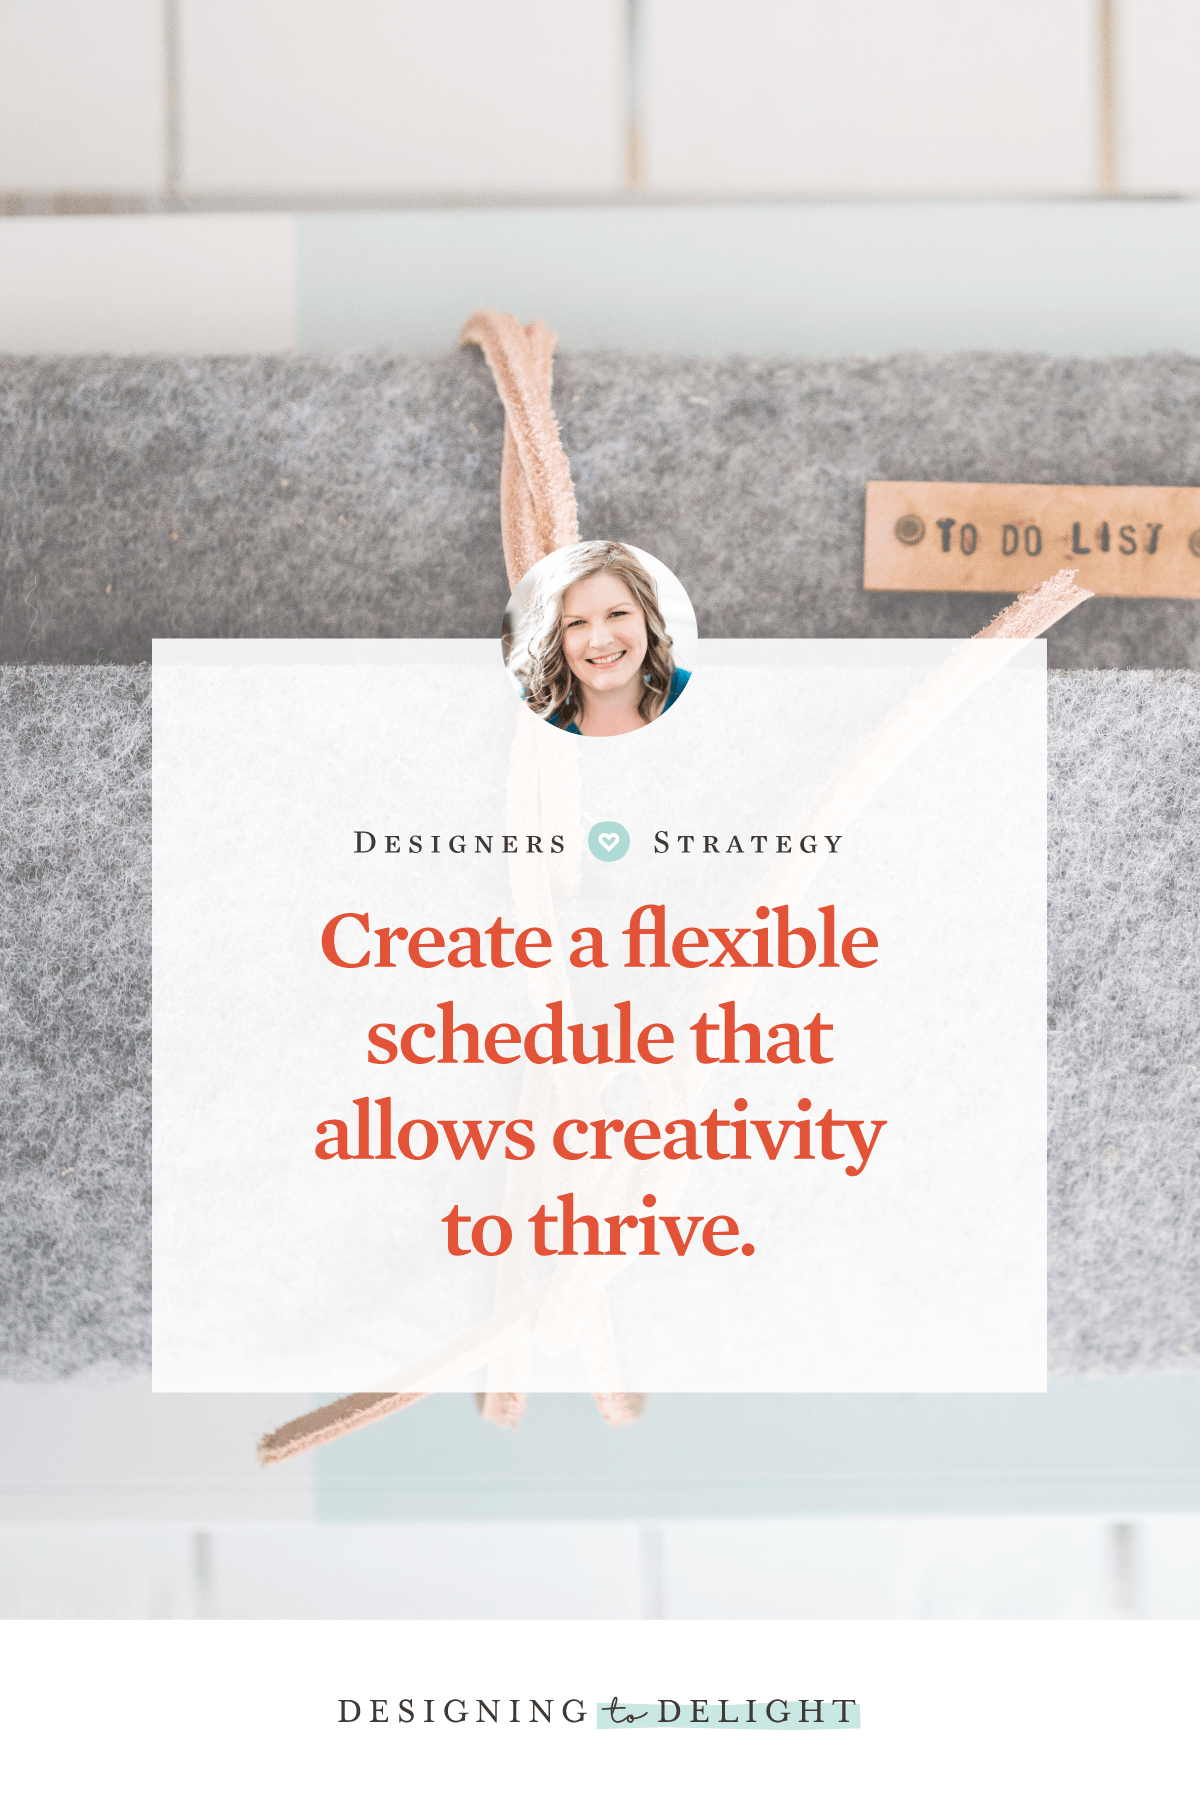 Designer friends - learn how to be more effective inside your current constraints – rather than trying to simply produce more by carving out more time.